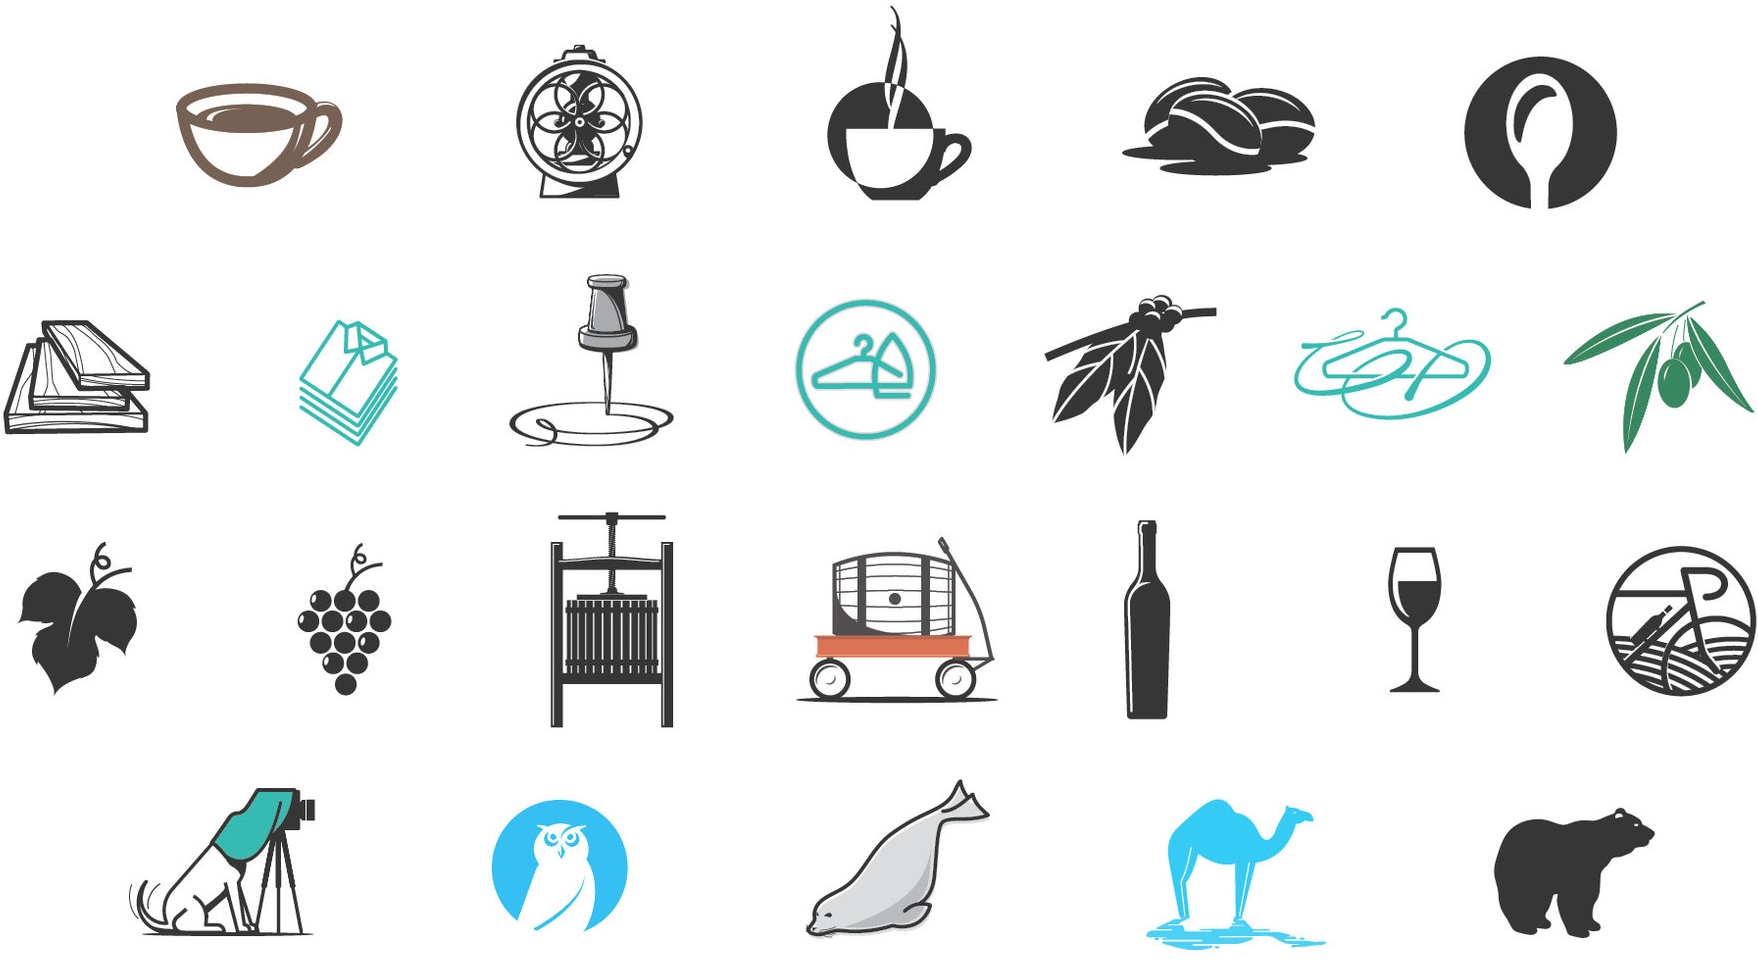 ICONS - Variety of vector icons.Responsible for concept, design and illustration.